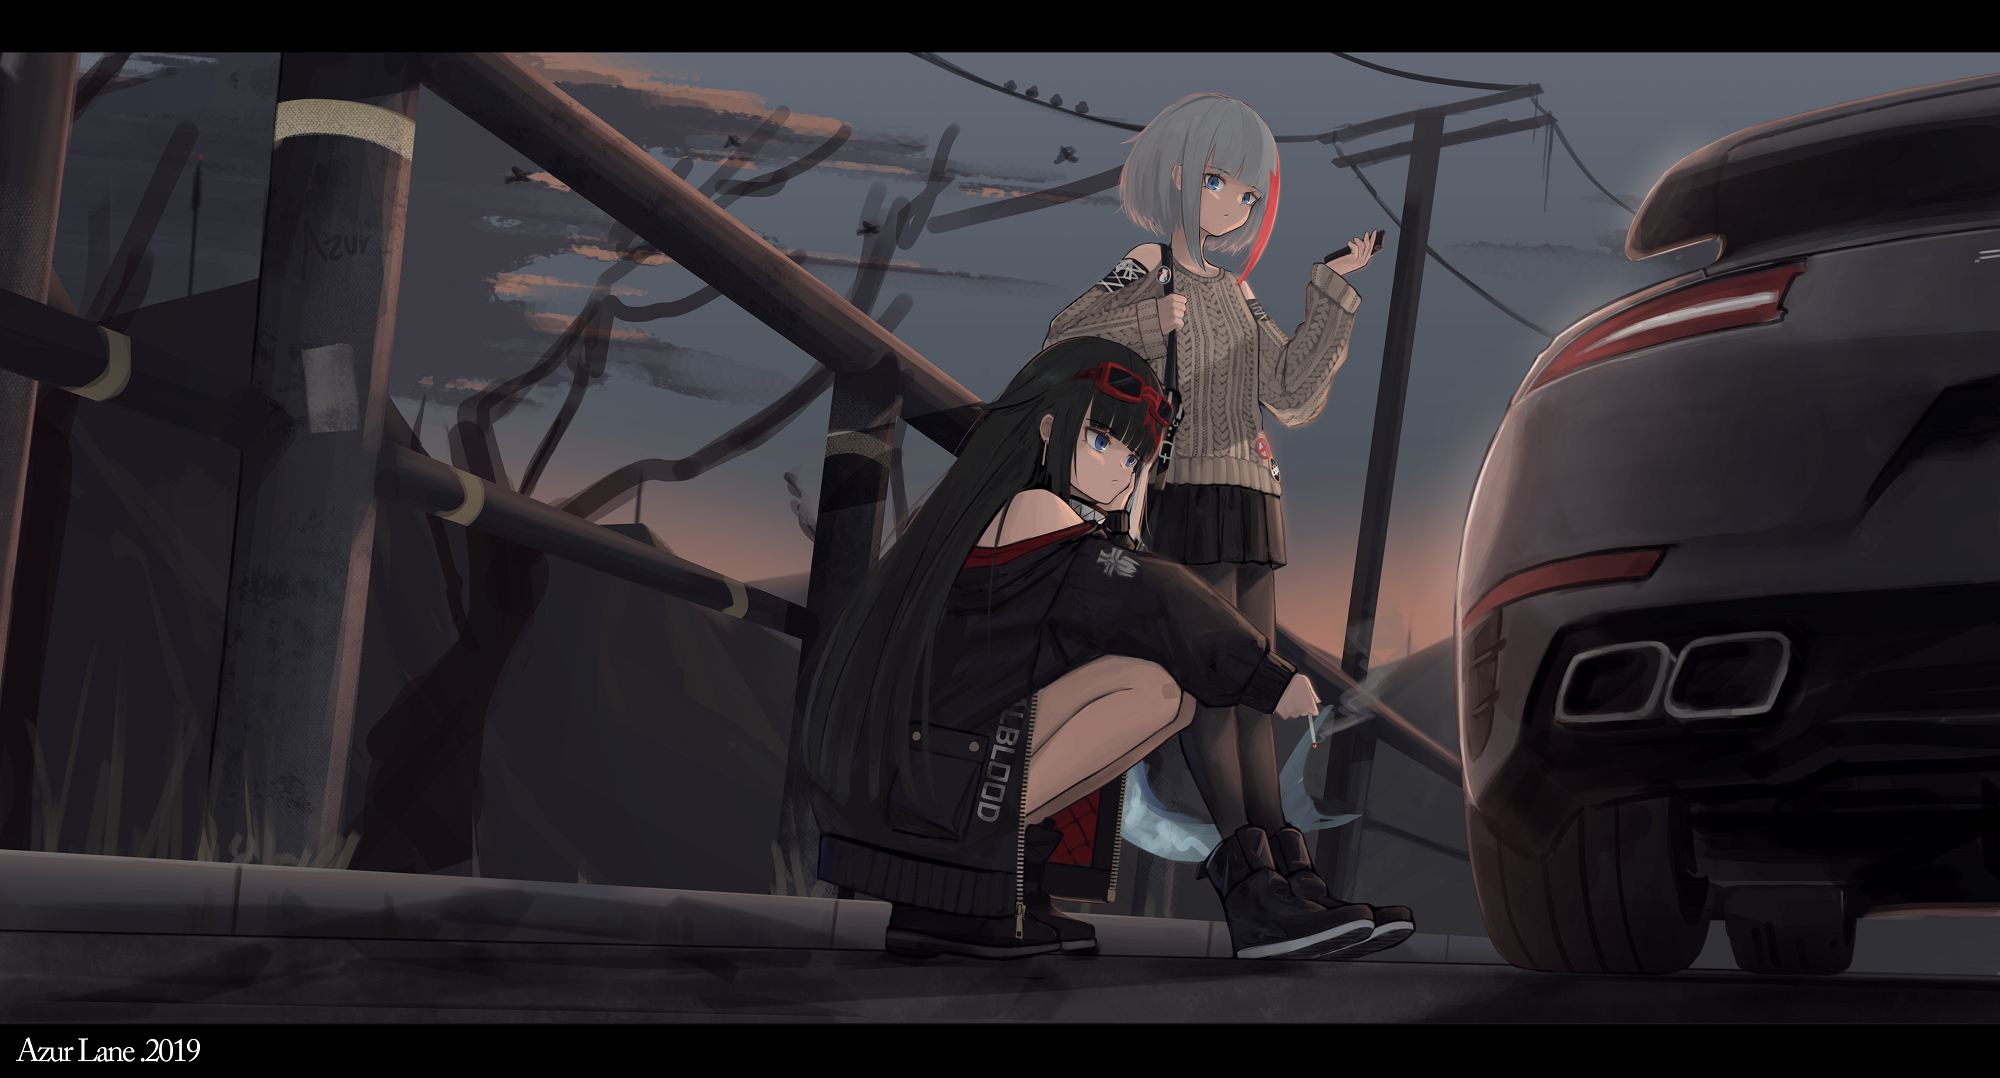 Anime 2000x1078 anime girls anime Azur Lane Admiral Graf Spee (Azur Lane) Deutschland (Azur Lane) magpie_MKI car vehicle long hair dark hair 2019 (Year)